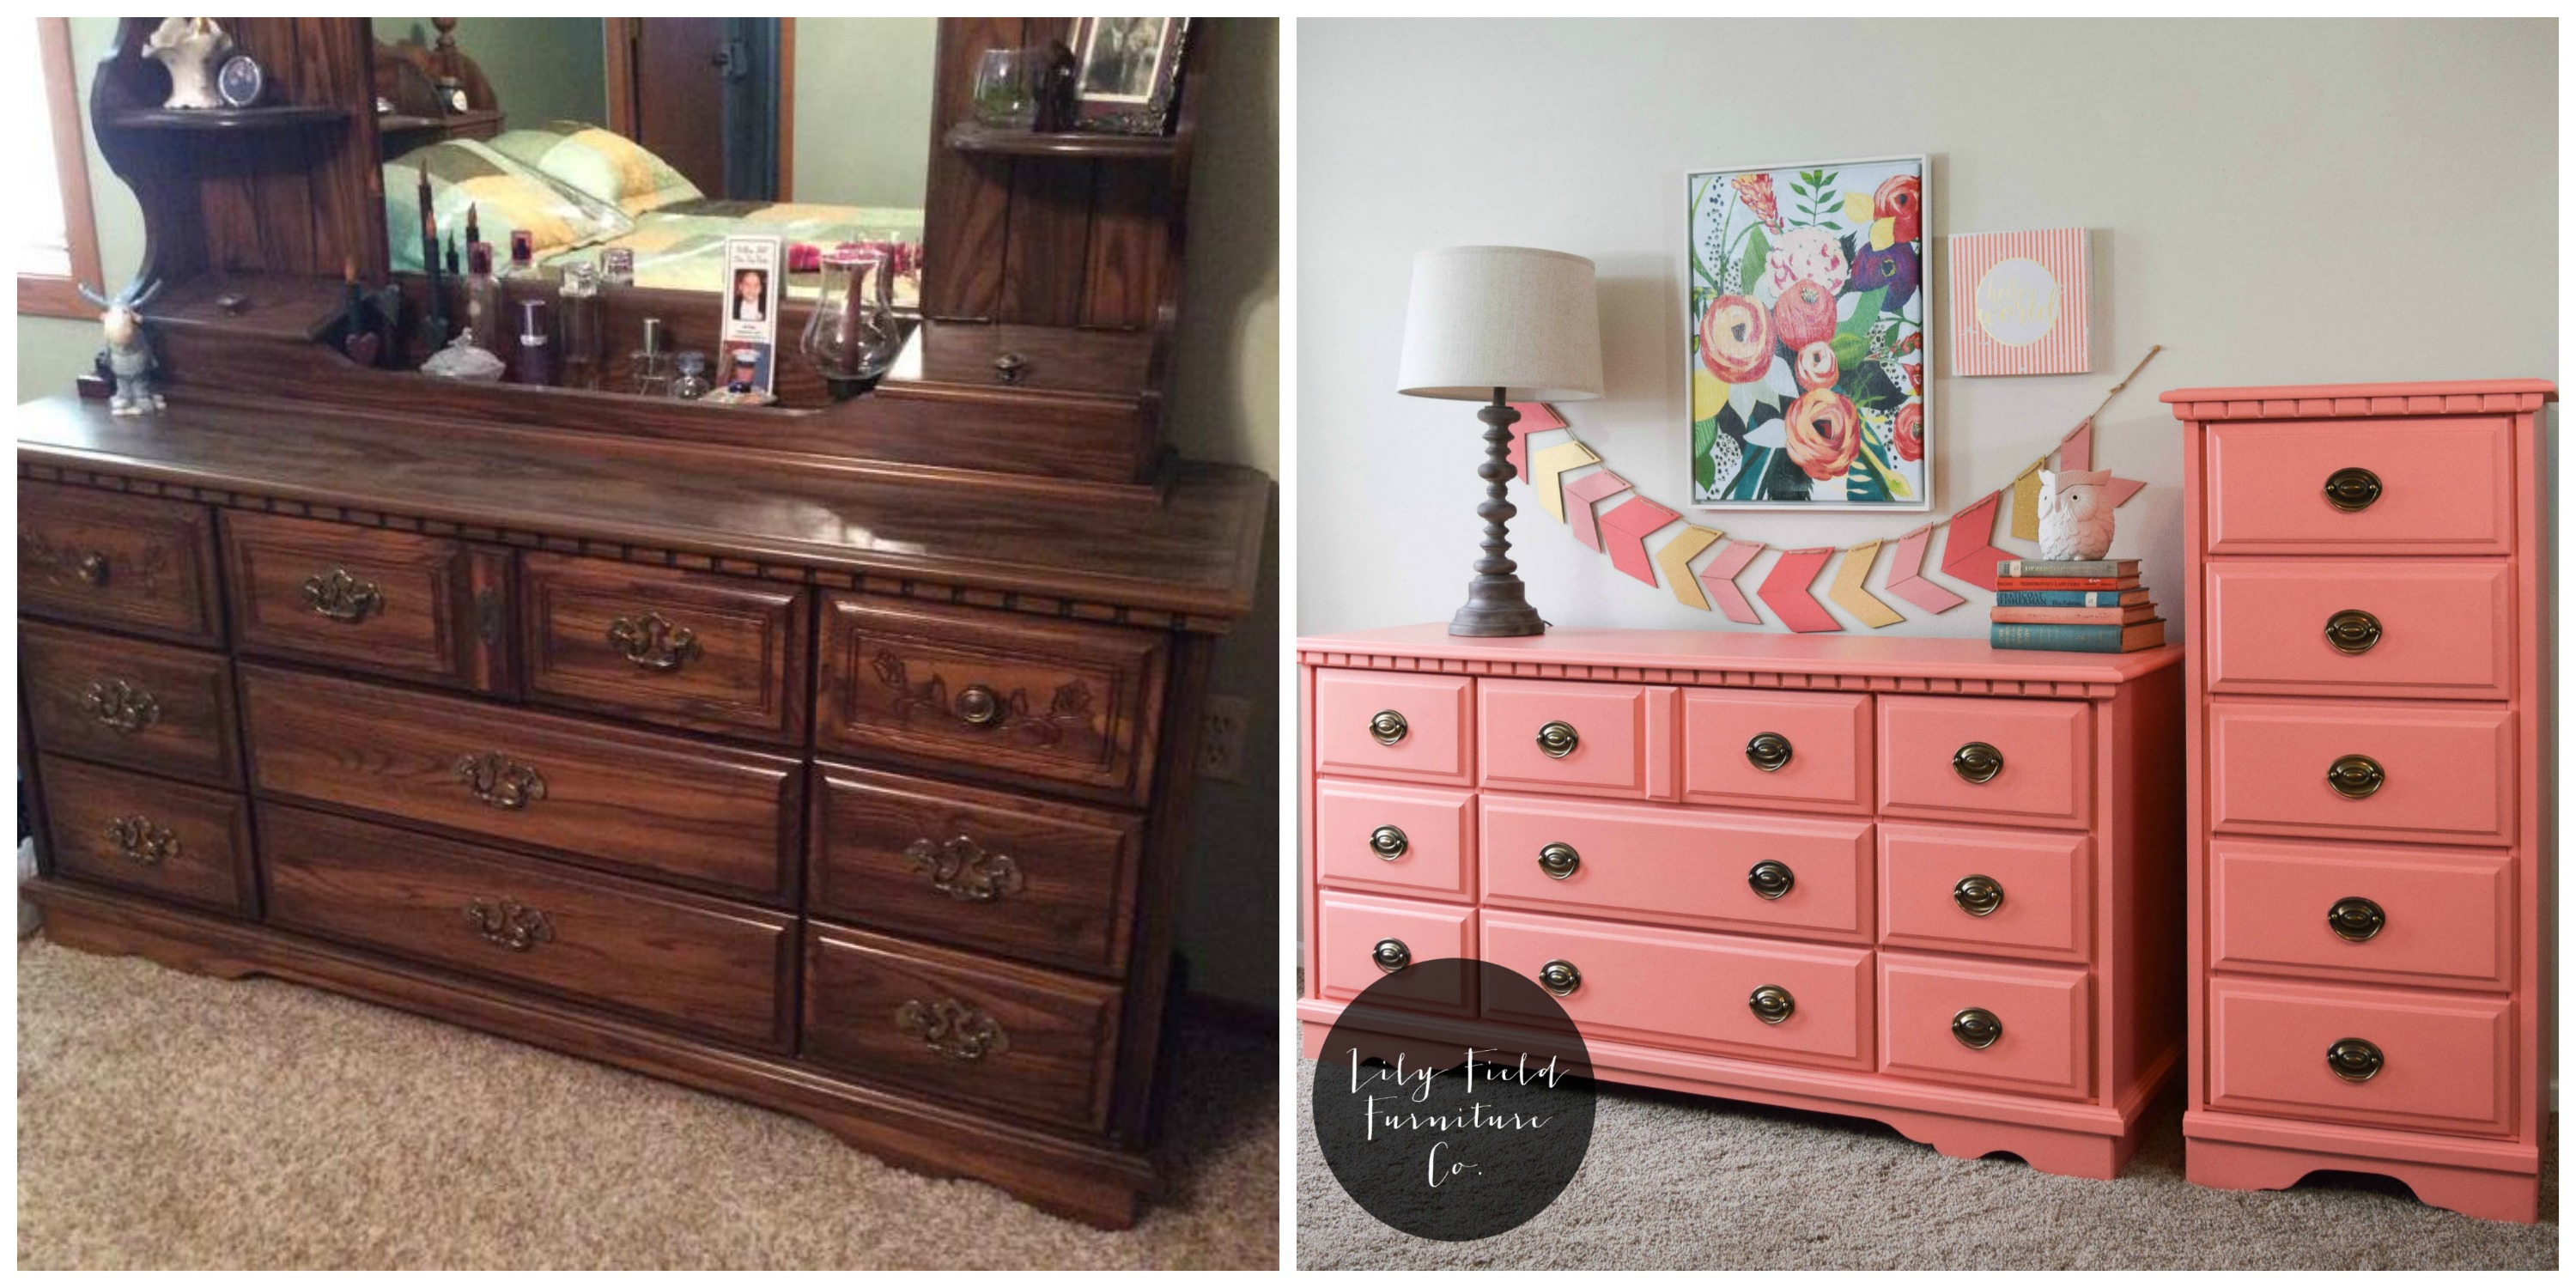 Updating A Dresser From The 80s In A Few Simple Steps Lily Field Co